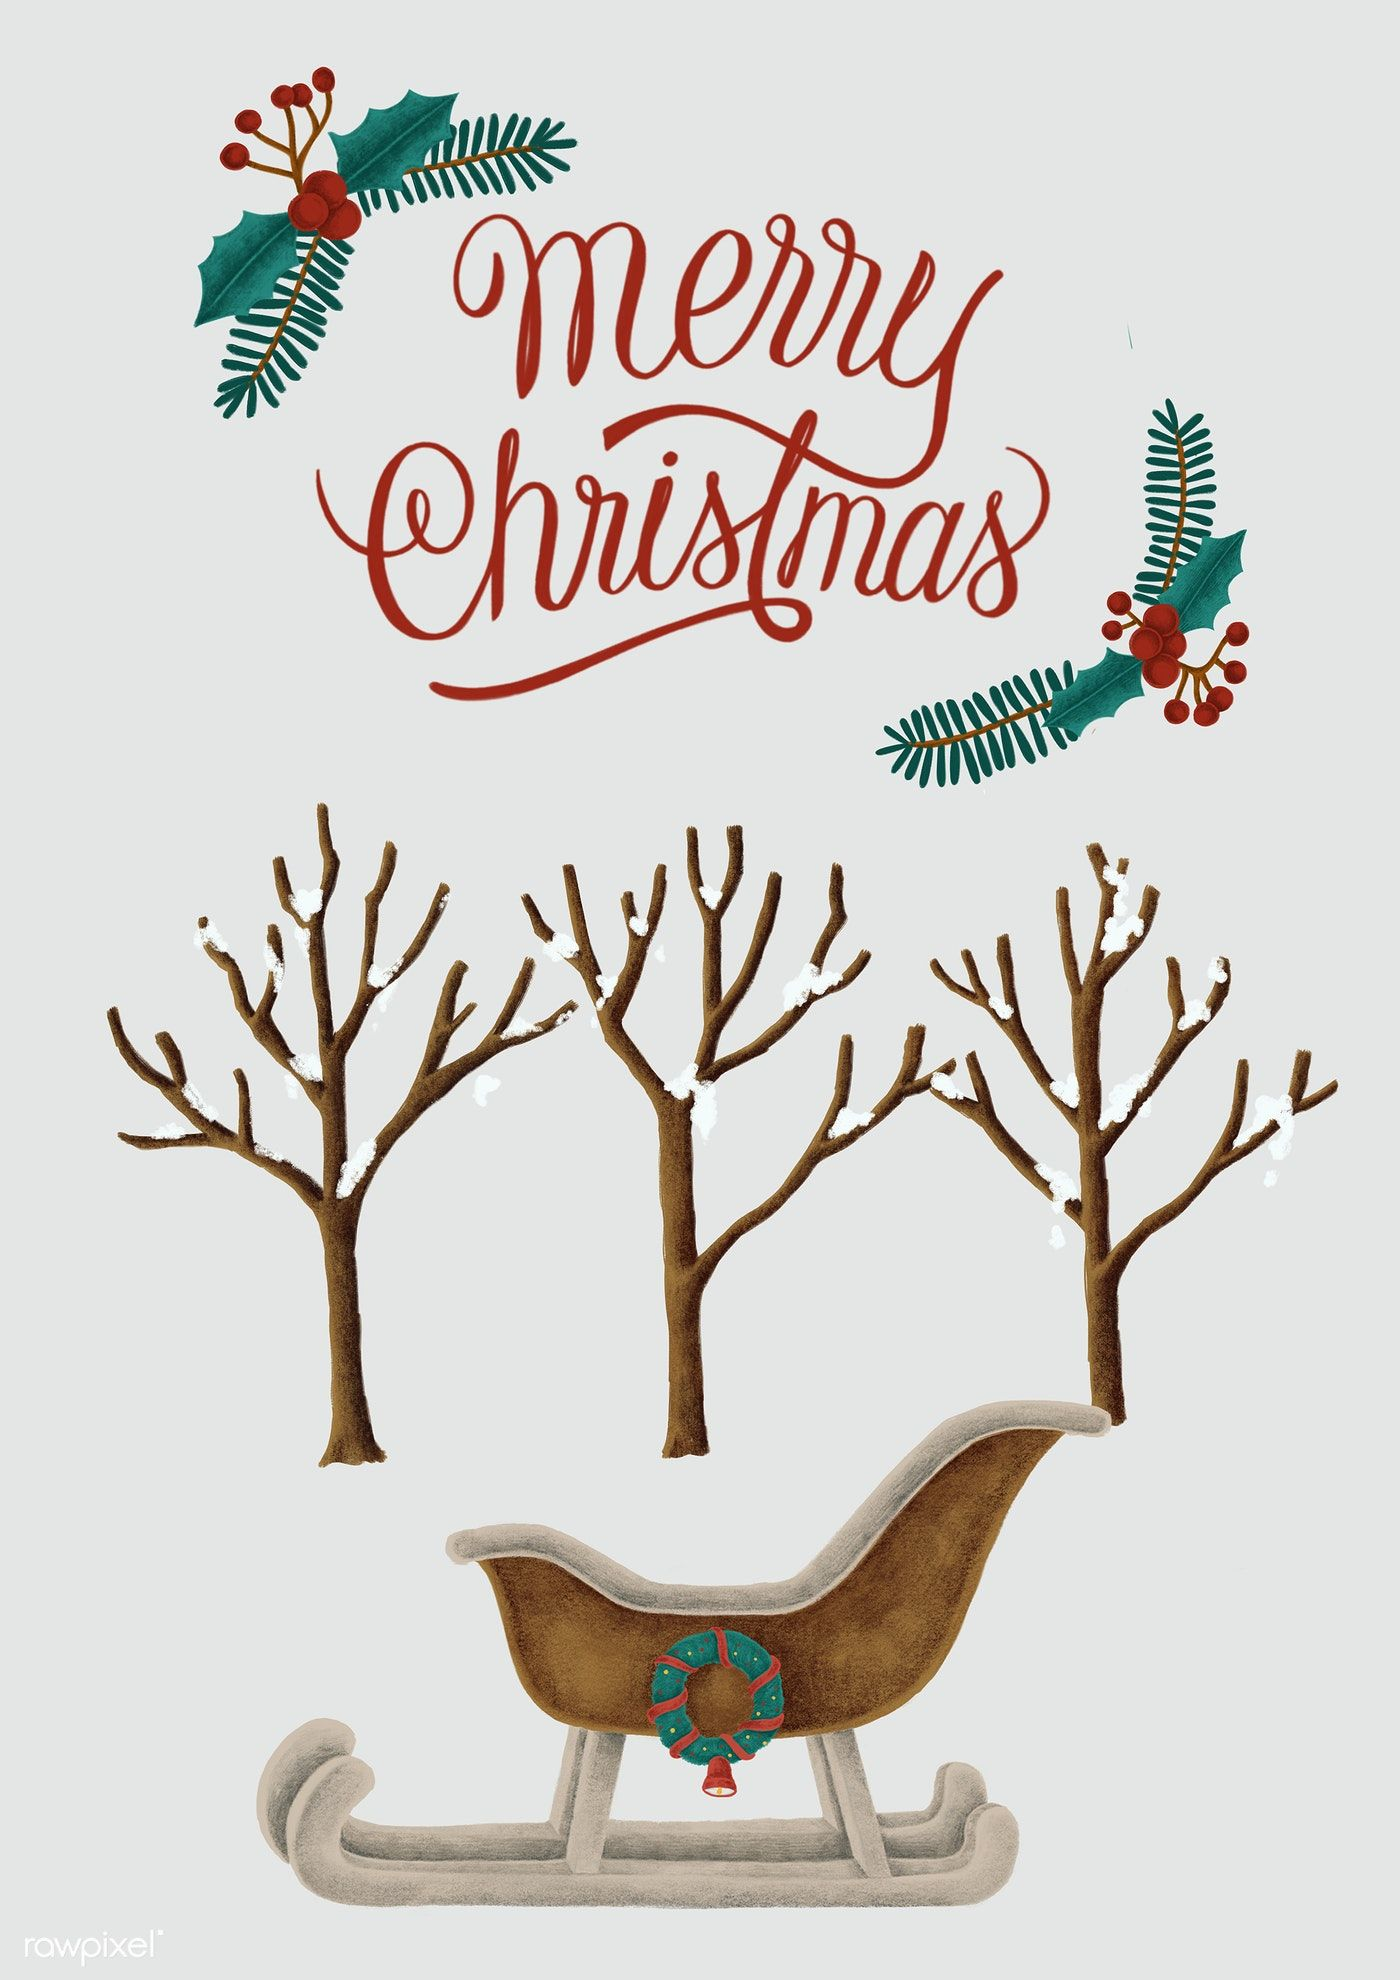 Download premium illustration of Merry Christmas hand